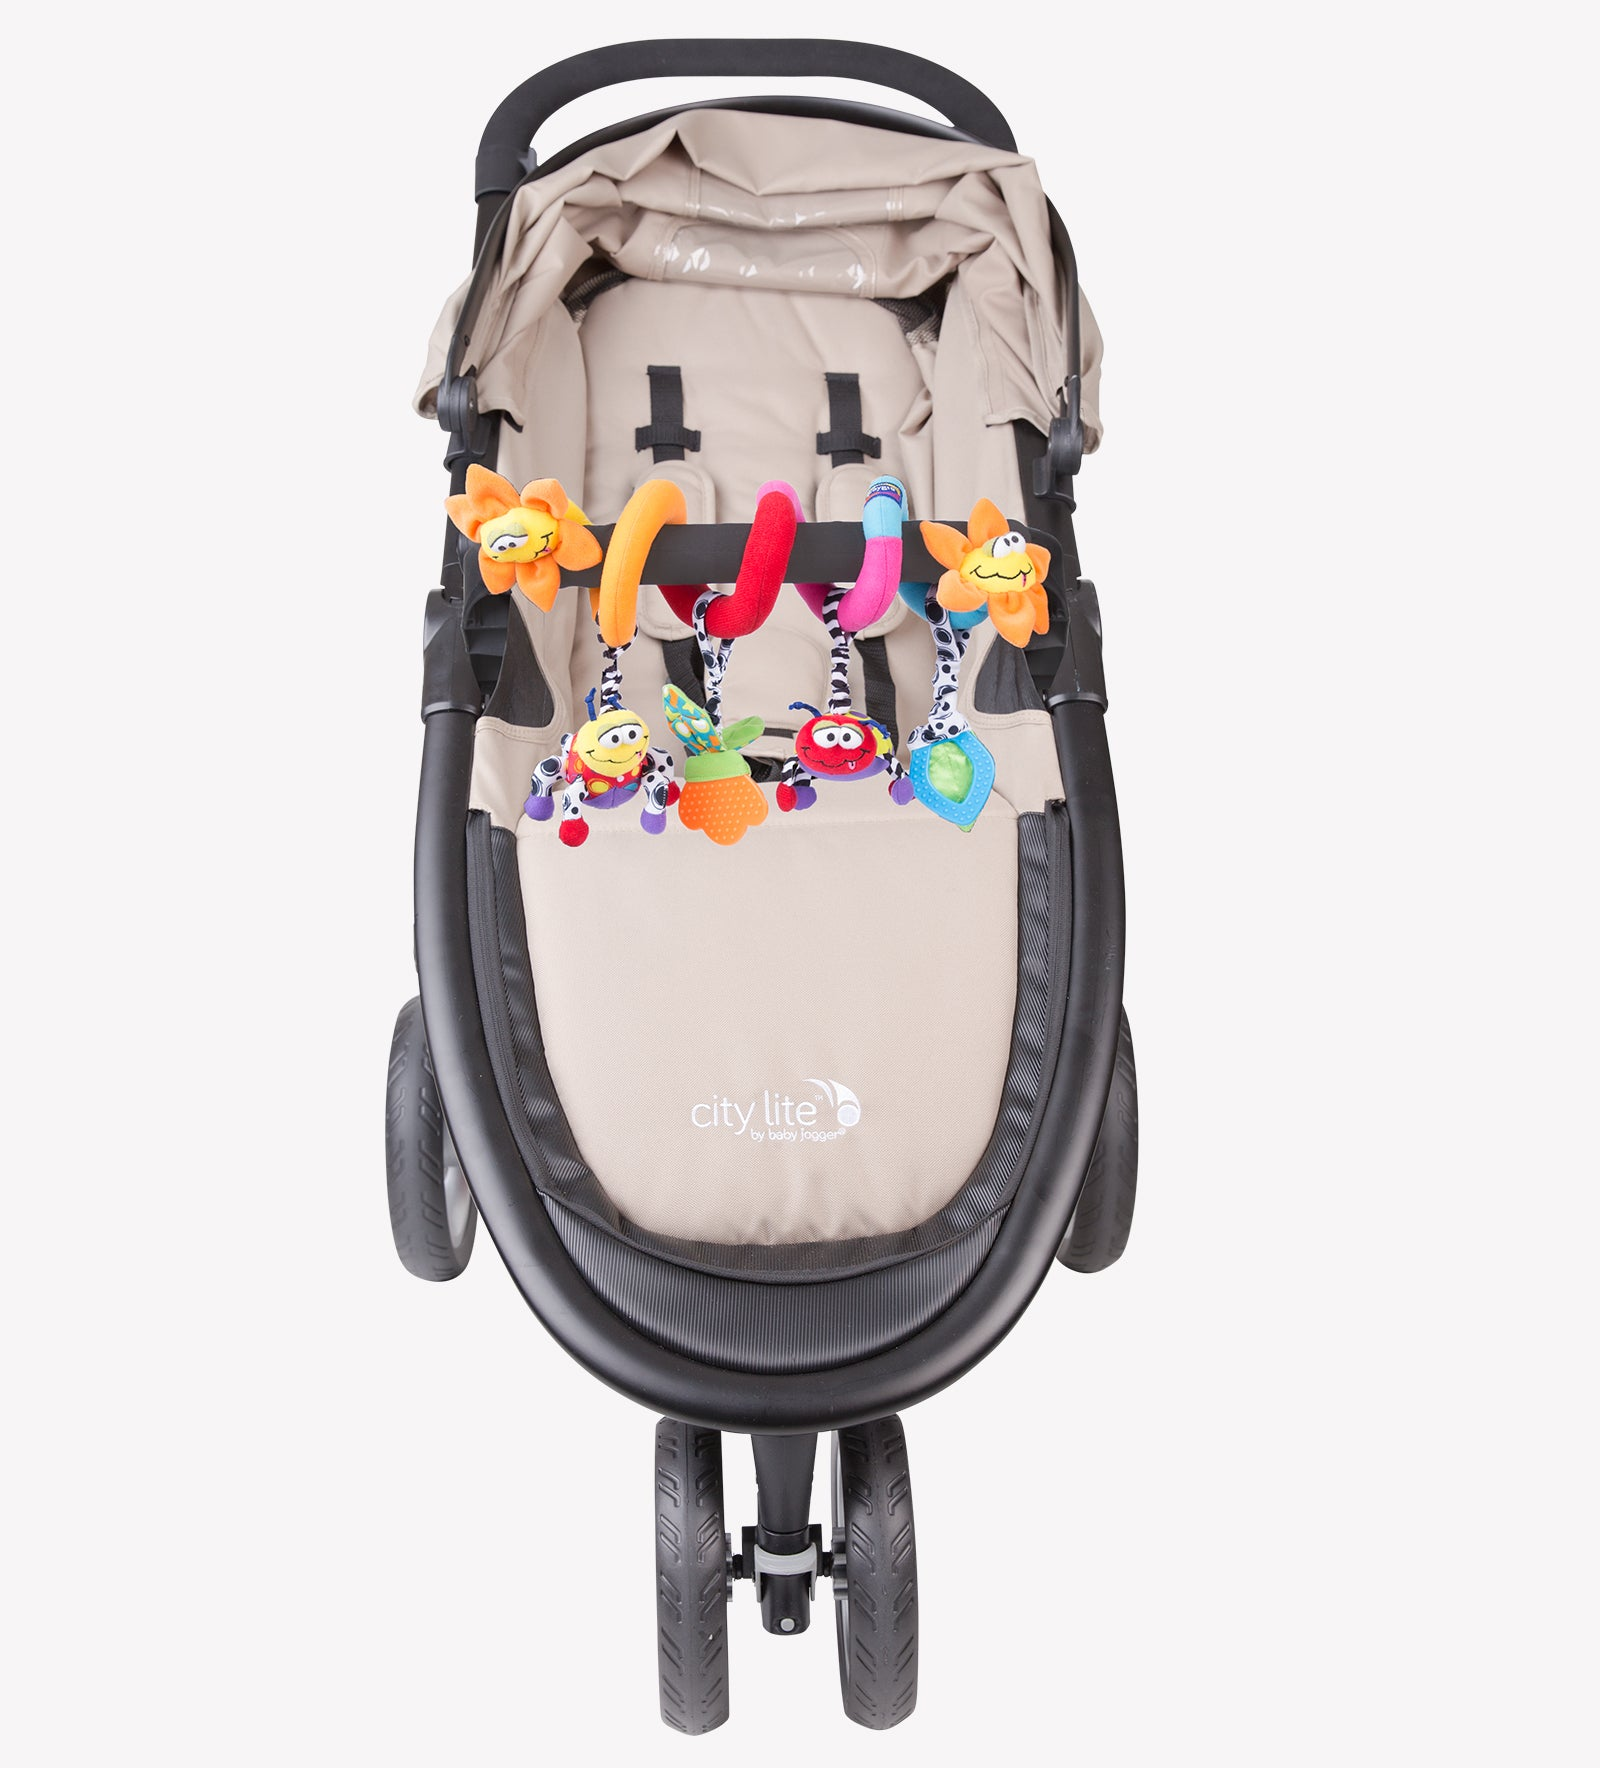 Playgro Garden Twirl is twired on the baby stroller bumper bar